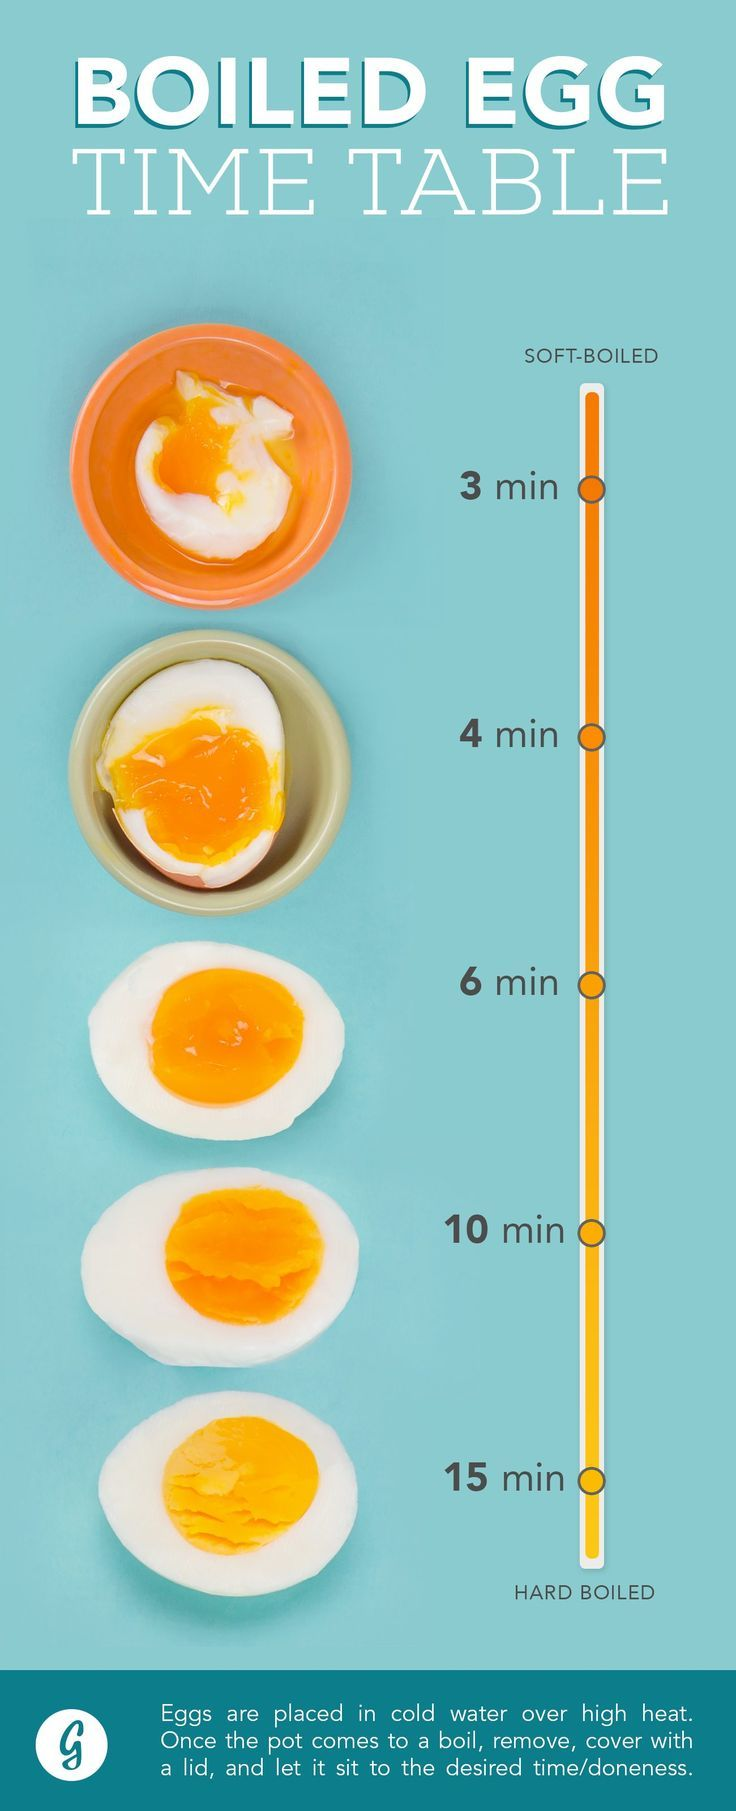 Boiled egg Time table: From soft and runny to totally solid to everything.